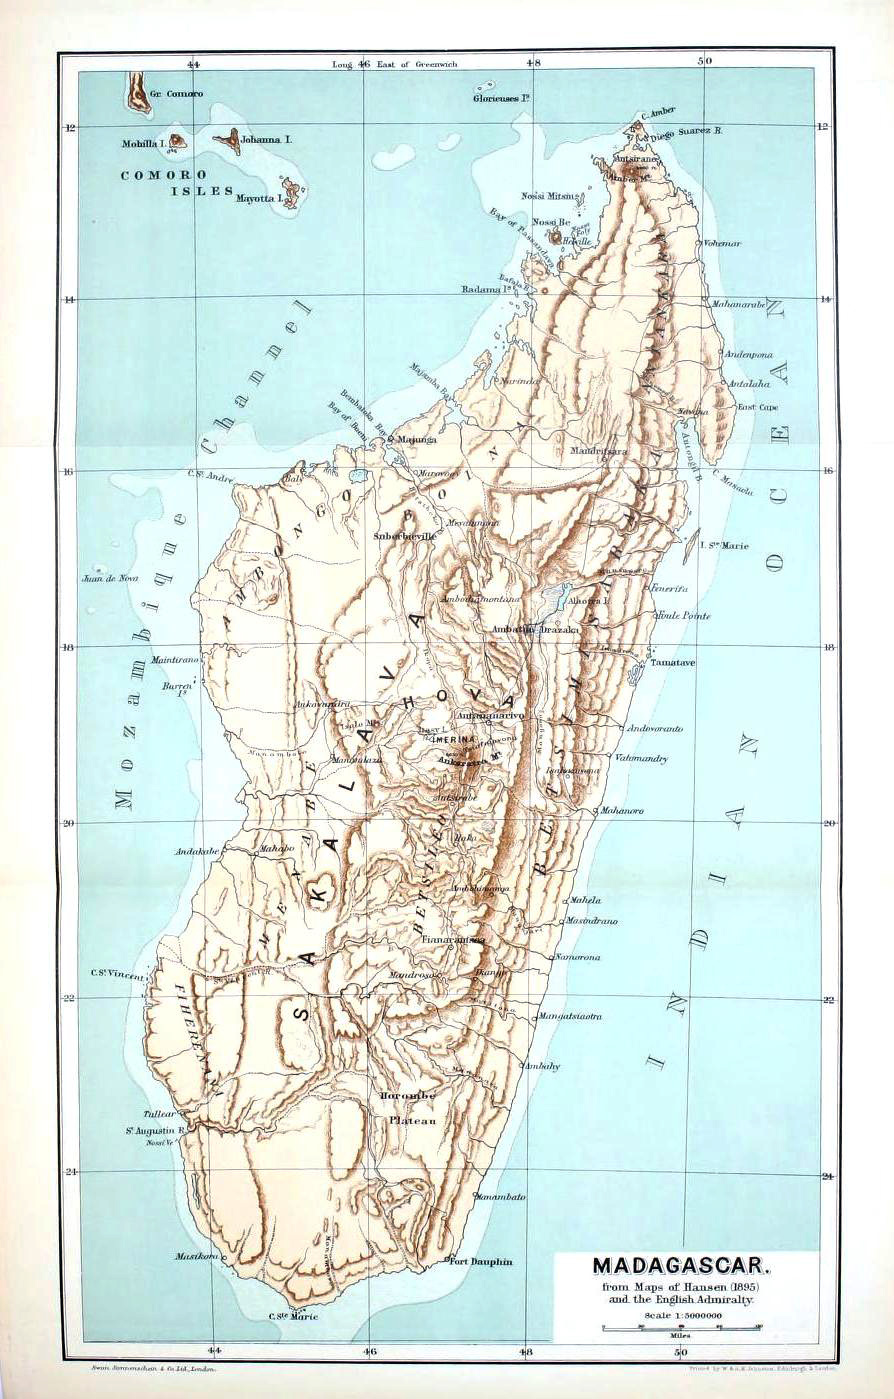 Map of Madagascar in 1895